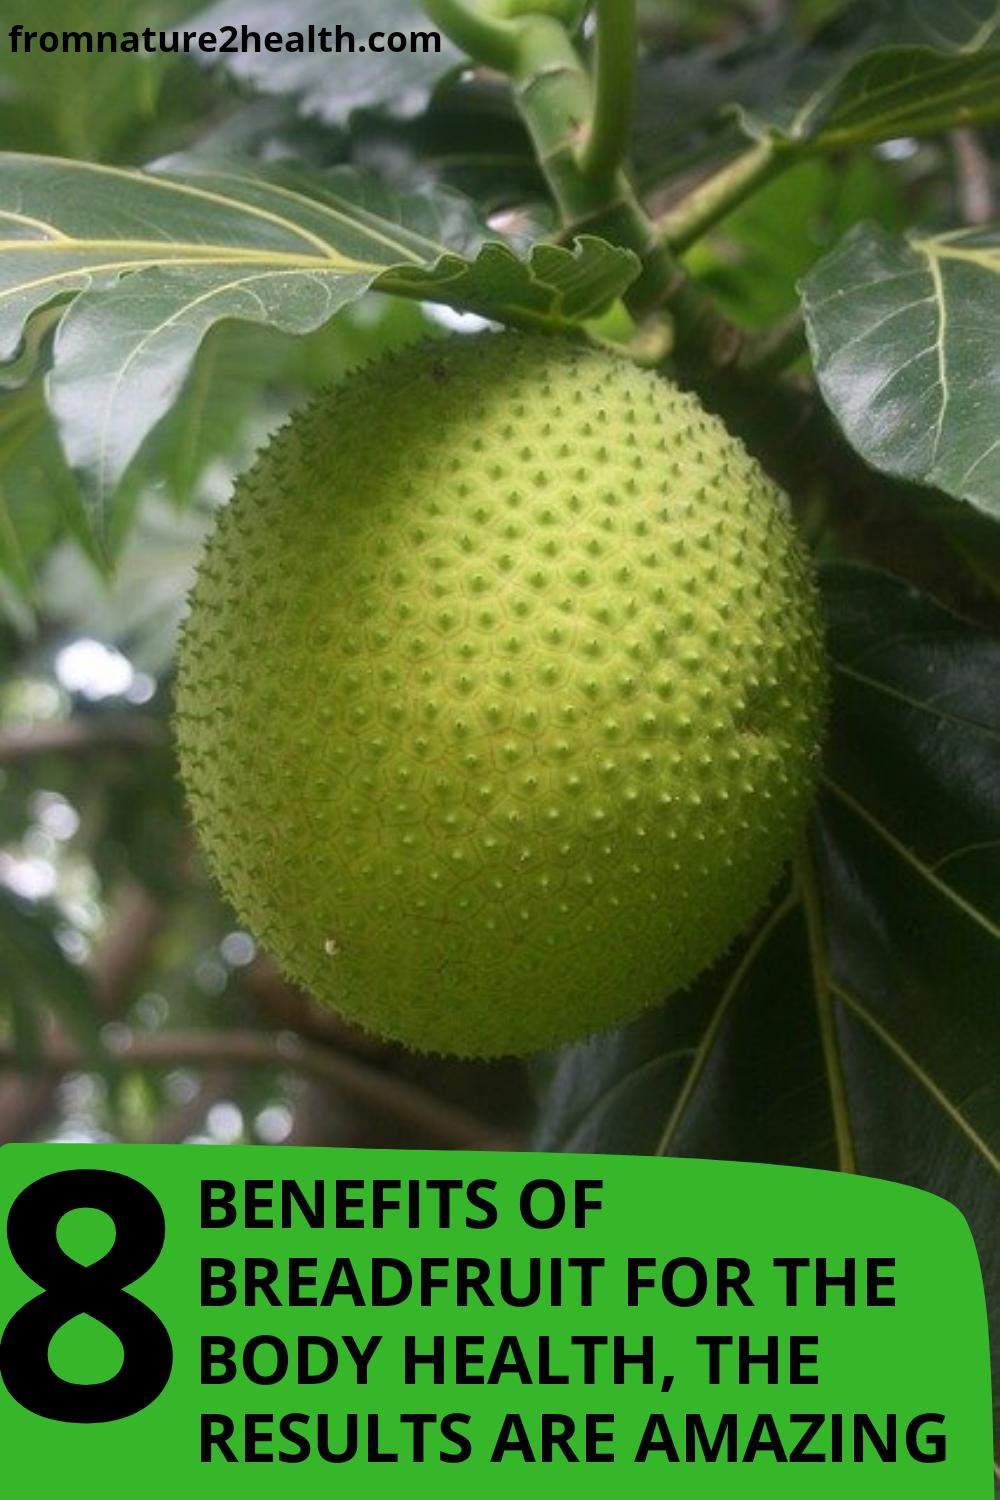 8 Benefits of Breadfruit for Bone, Cancer, Diabetes, Digestion, Hair, Heart Disease